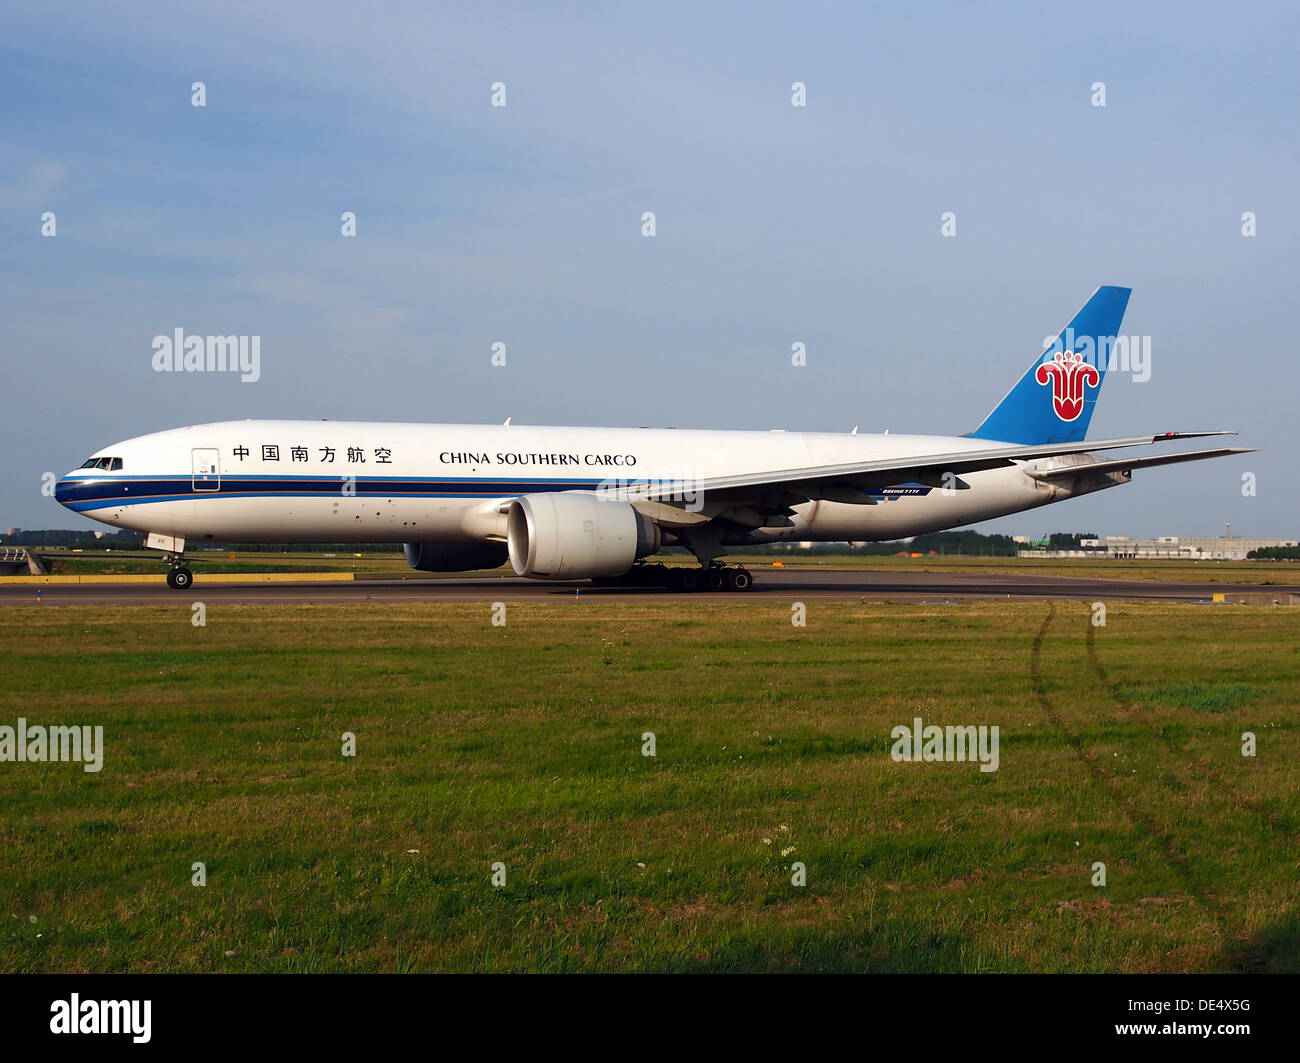 B-2071 China Southern Airlines Boeing 777-F1B - cn 37309, taxiing 22july2013 -007 - Stock Image